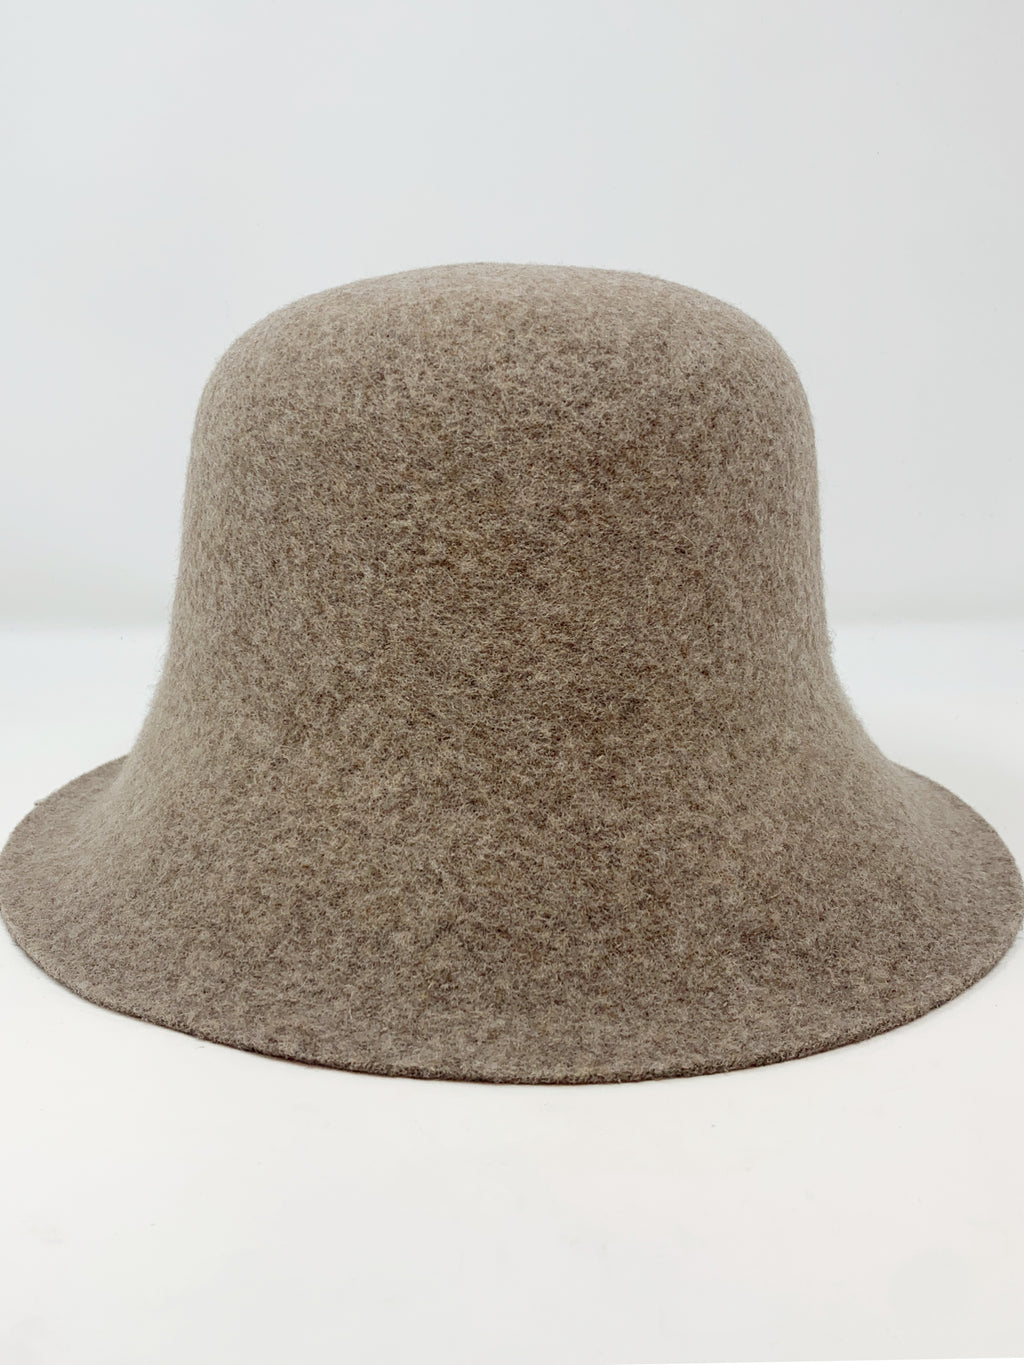 Felt Bucket Hat in Beige